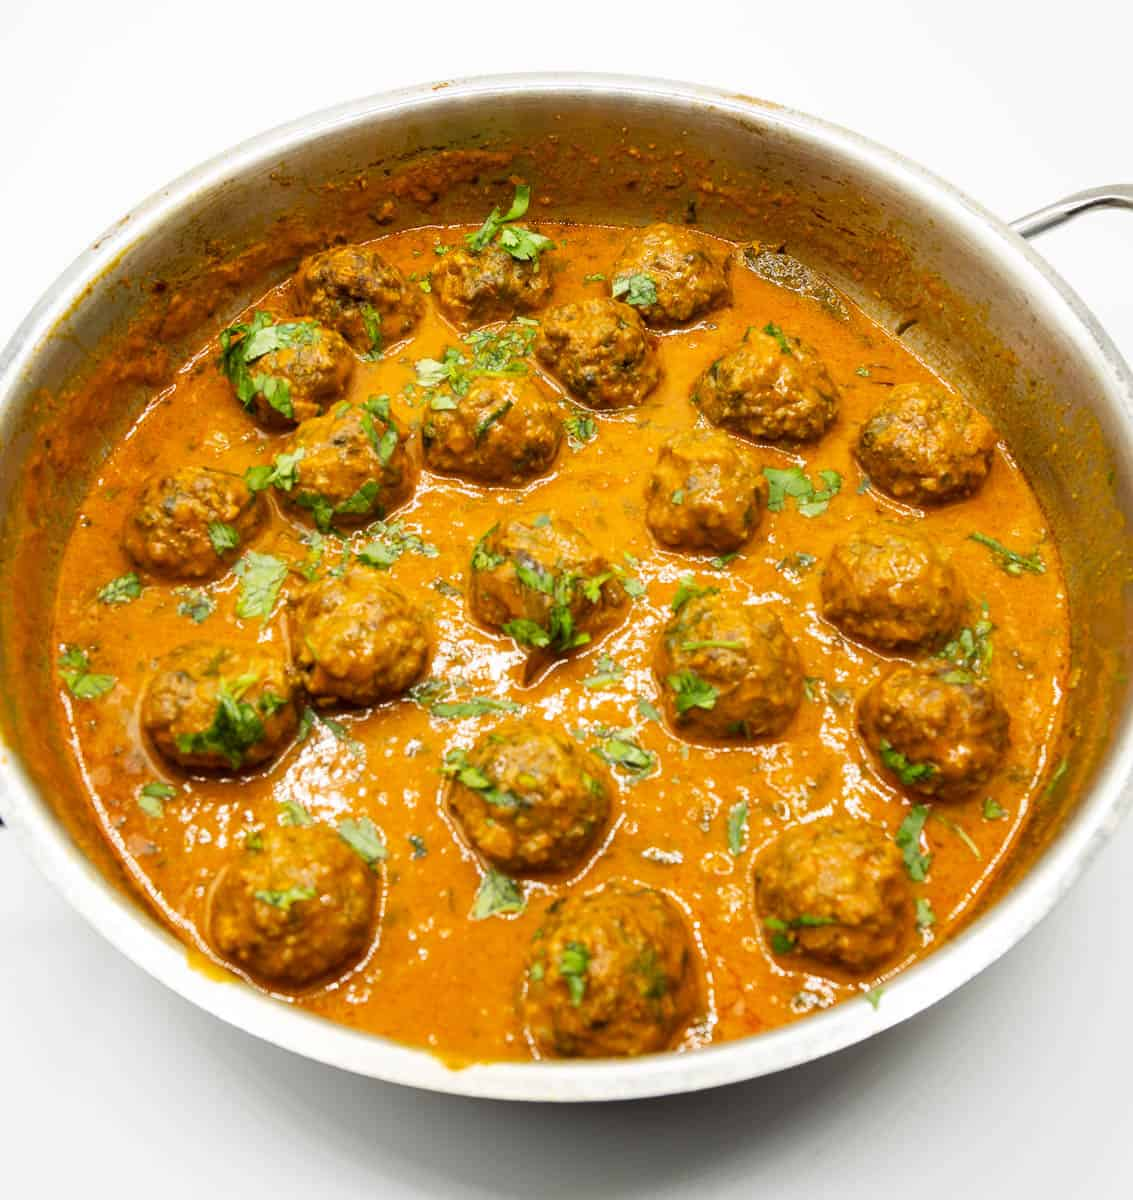 A skillet with curry and meatballs.